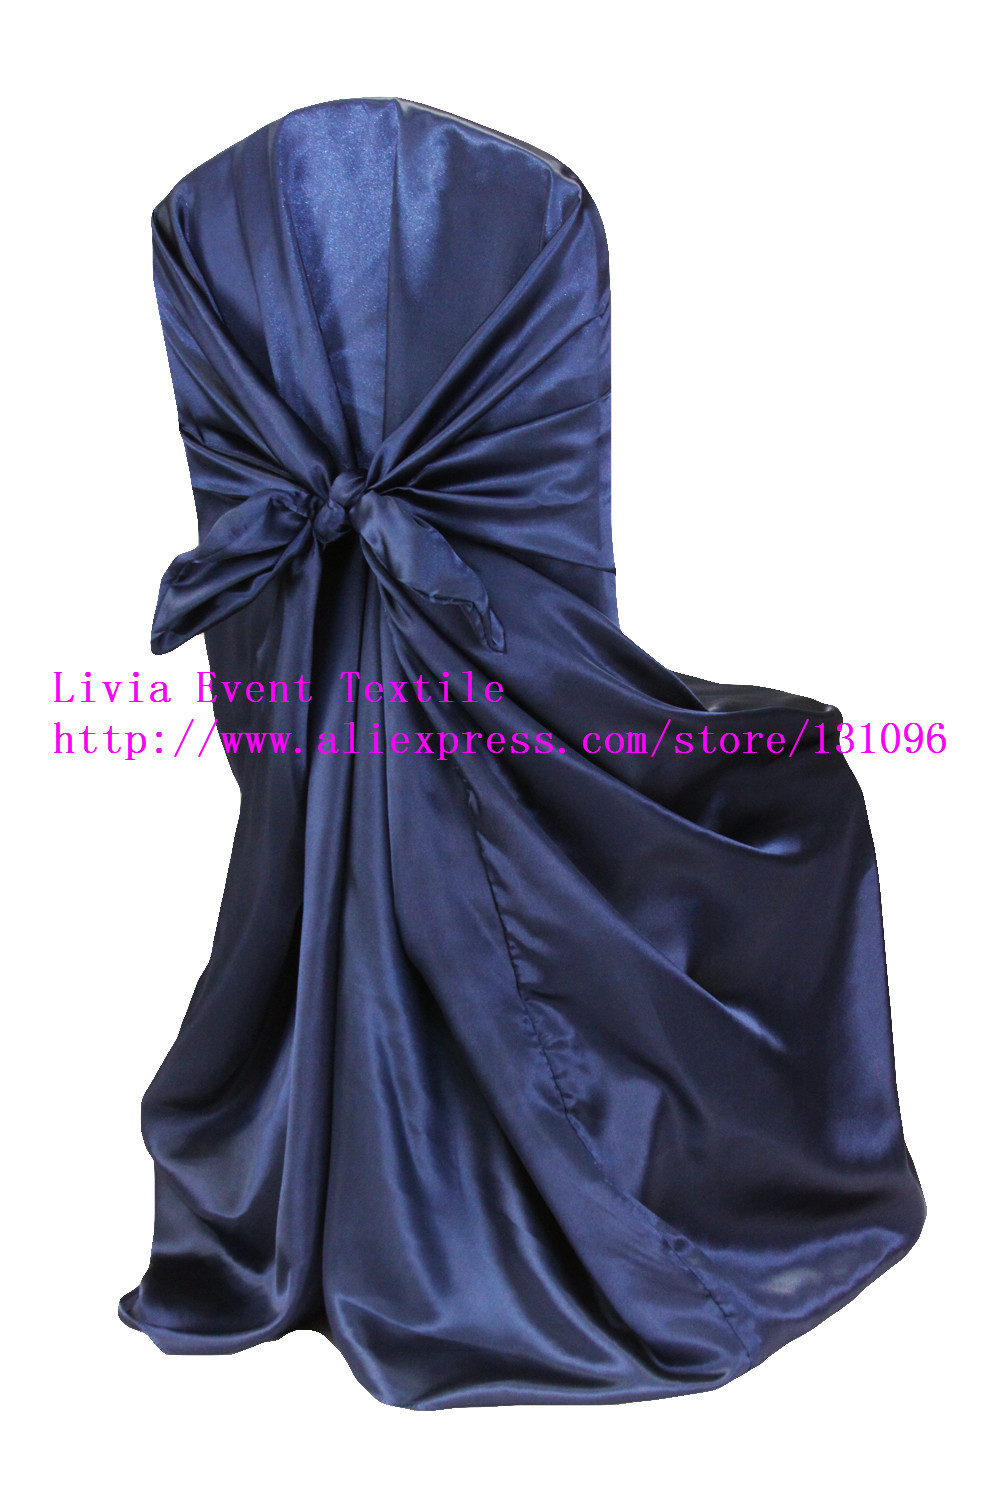 100pcs #51 Navy Blue Back Self tie Chair Cover,Universal Satin Chair Cover for Wedding Events &Party Decoration(China (Mainland))